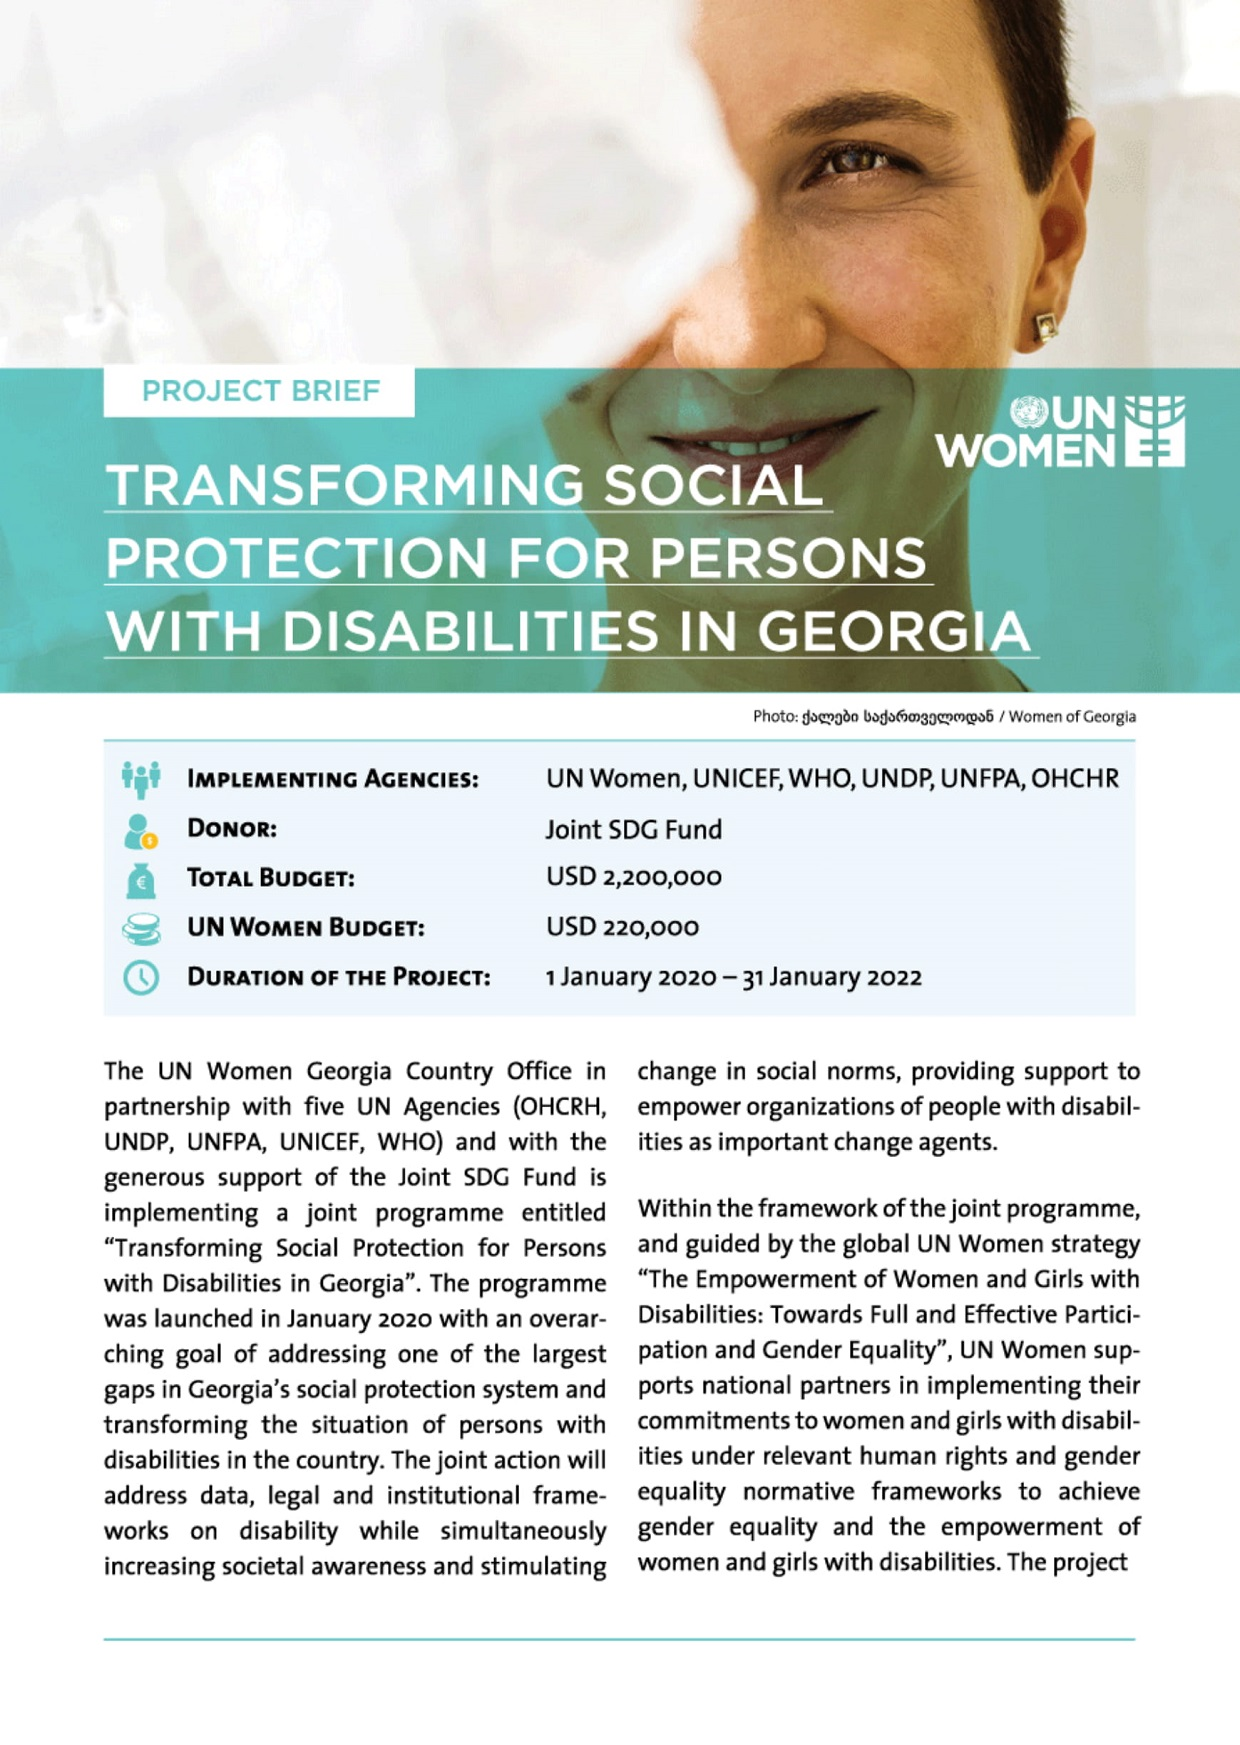 Transforming Social Protection for Persons with Disabilities in Georgia. Photo: UN Women